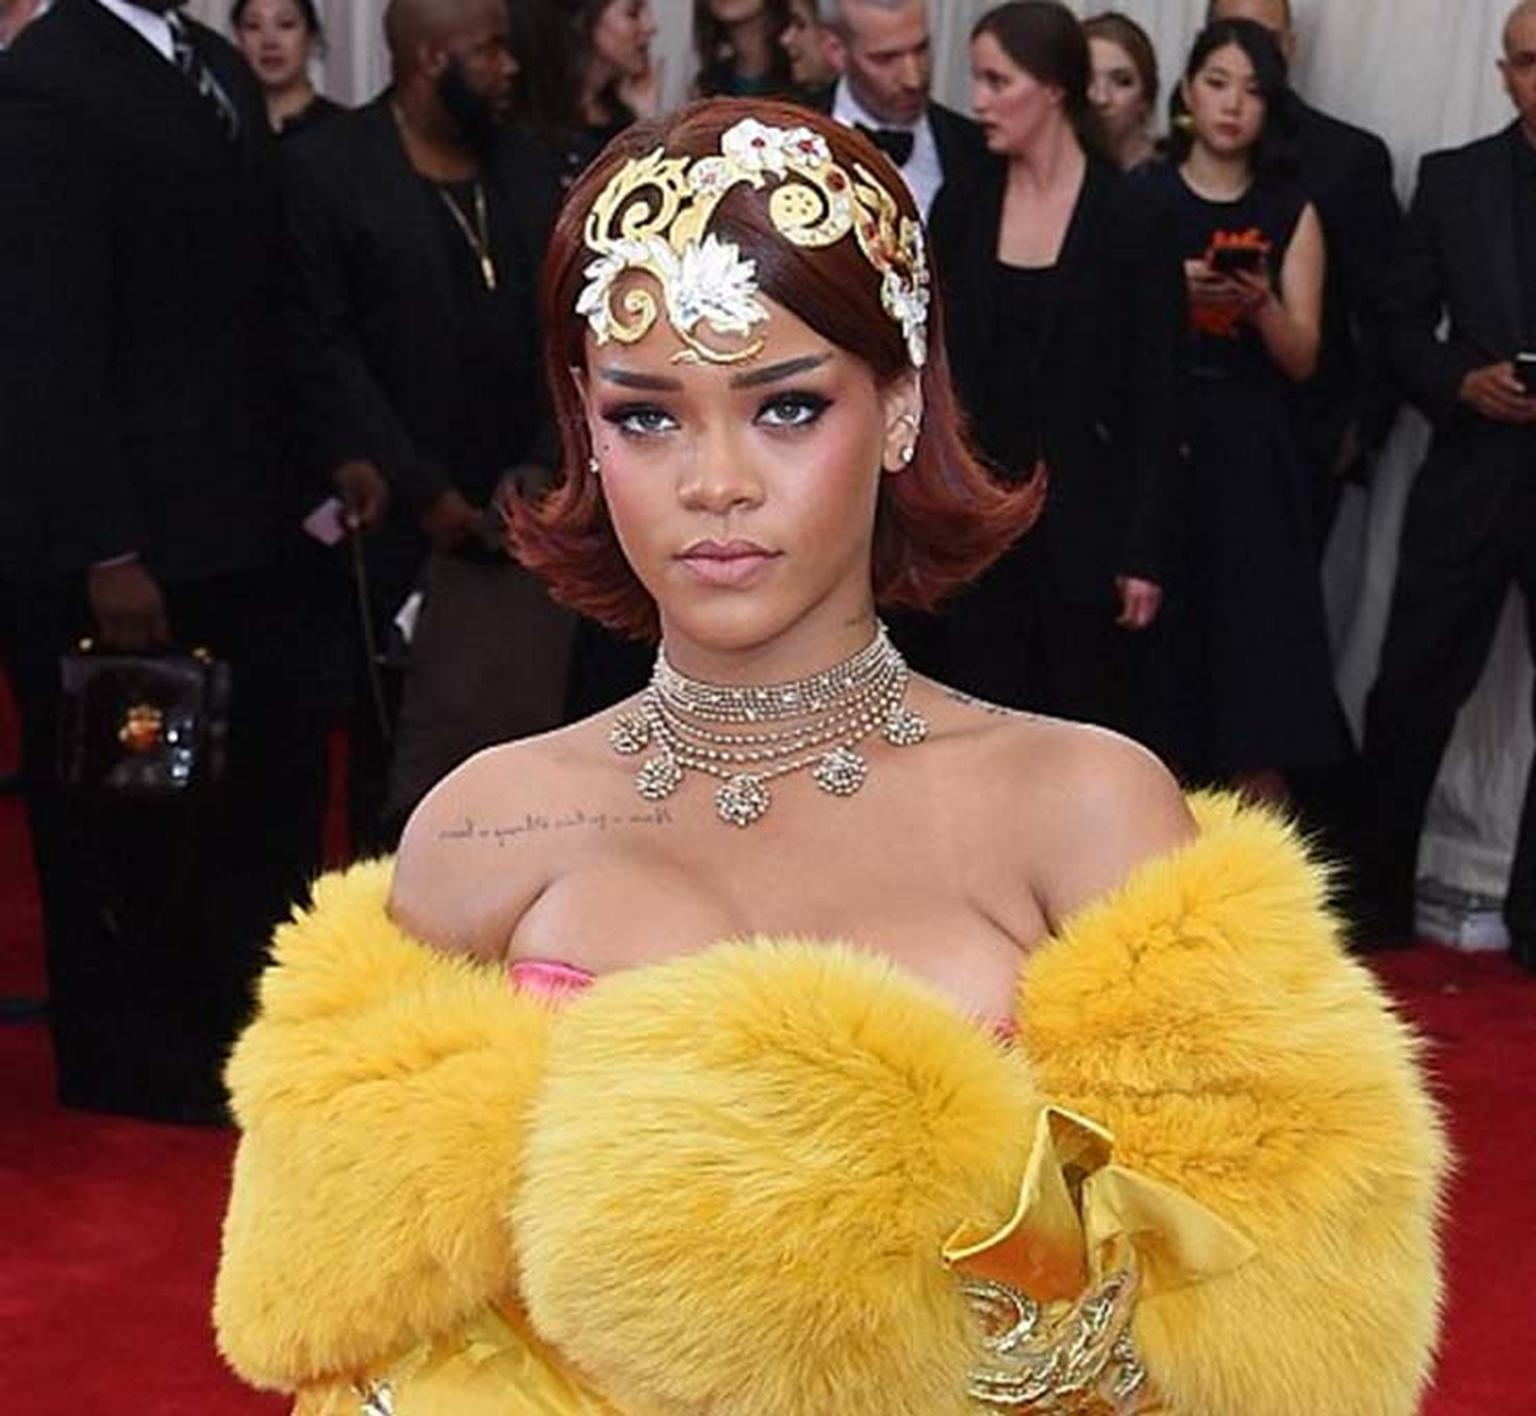 Rihanna made the entrance of the night at this year's Met Gala, accessorizing her show-stopping couture gown - designed by Guo Pei, whose work features in the exhibition - with a golden headpiece and Cartier Paris Nouvelle Vague necklace.